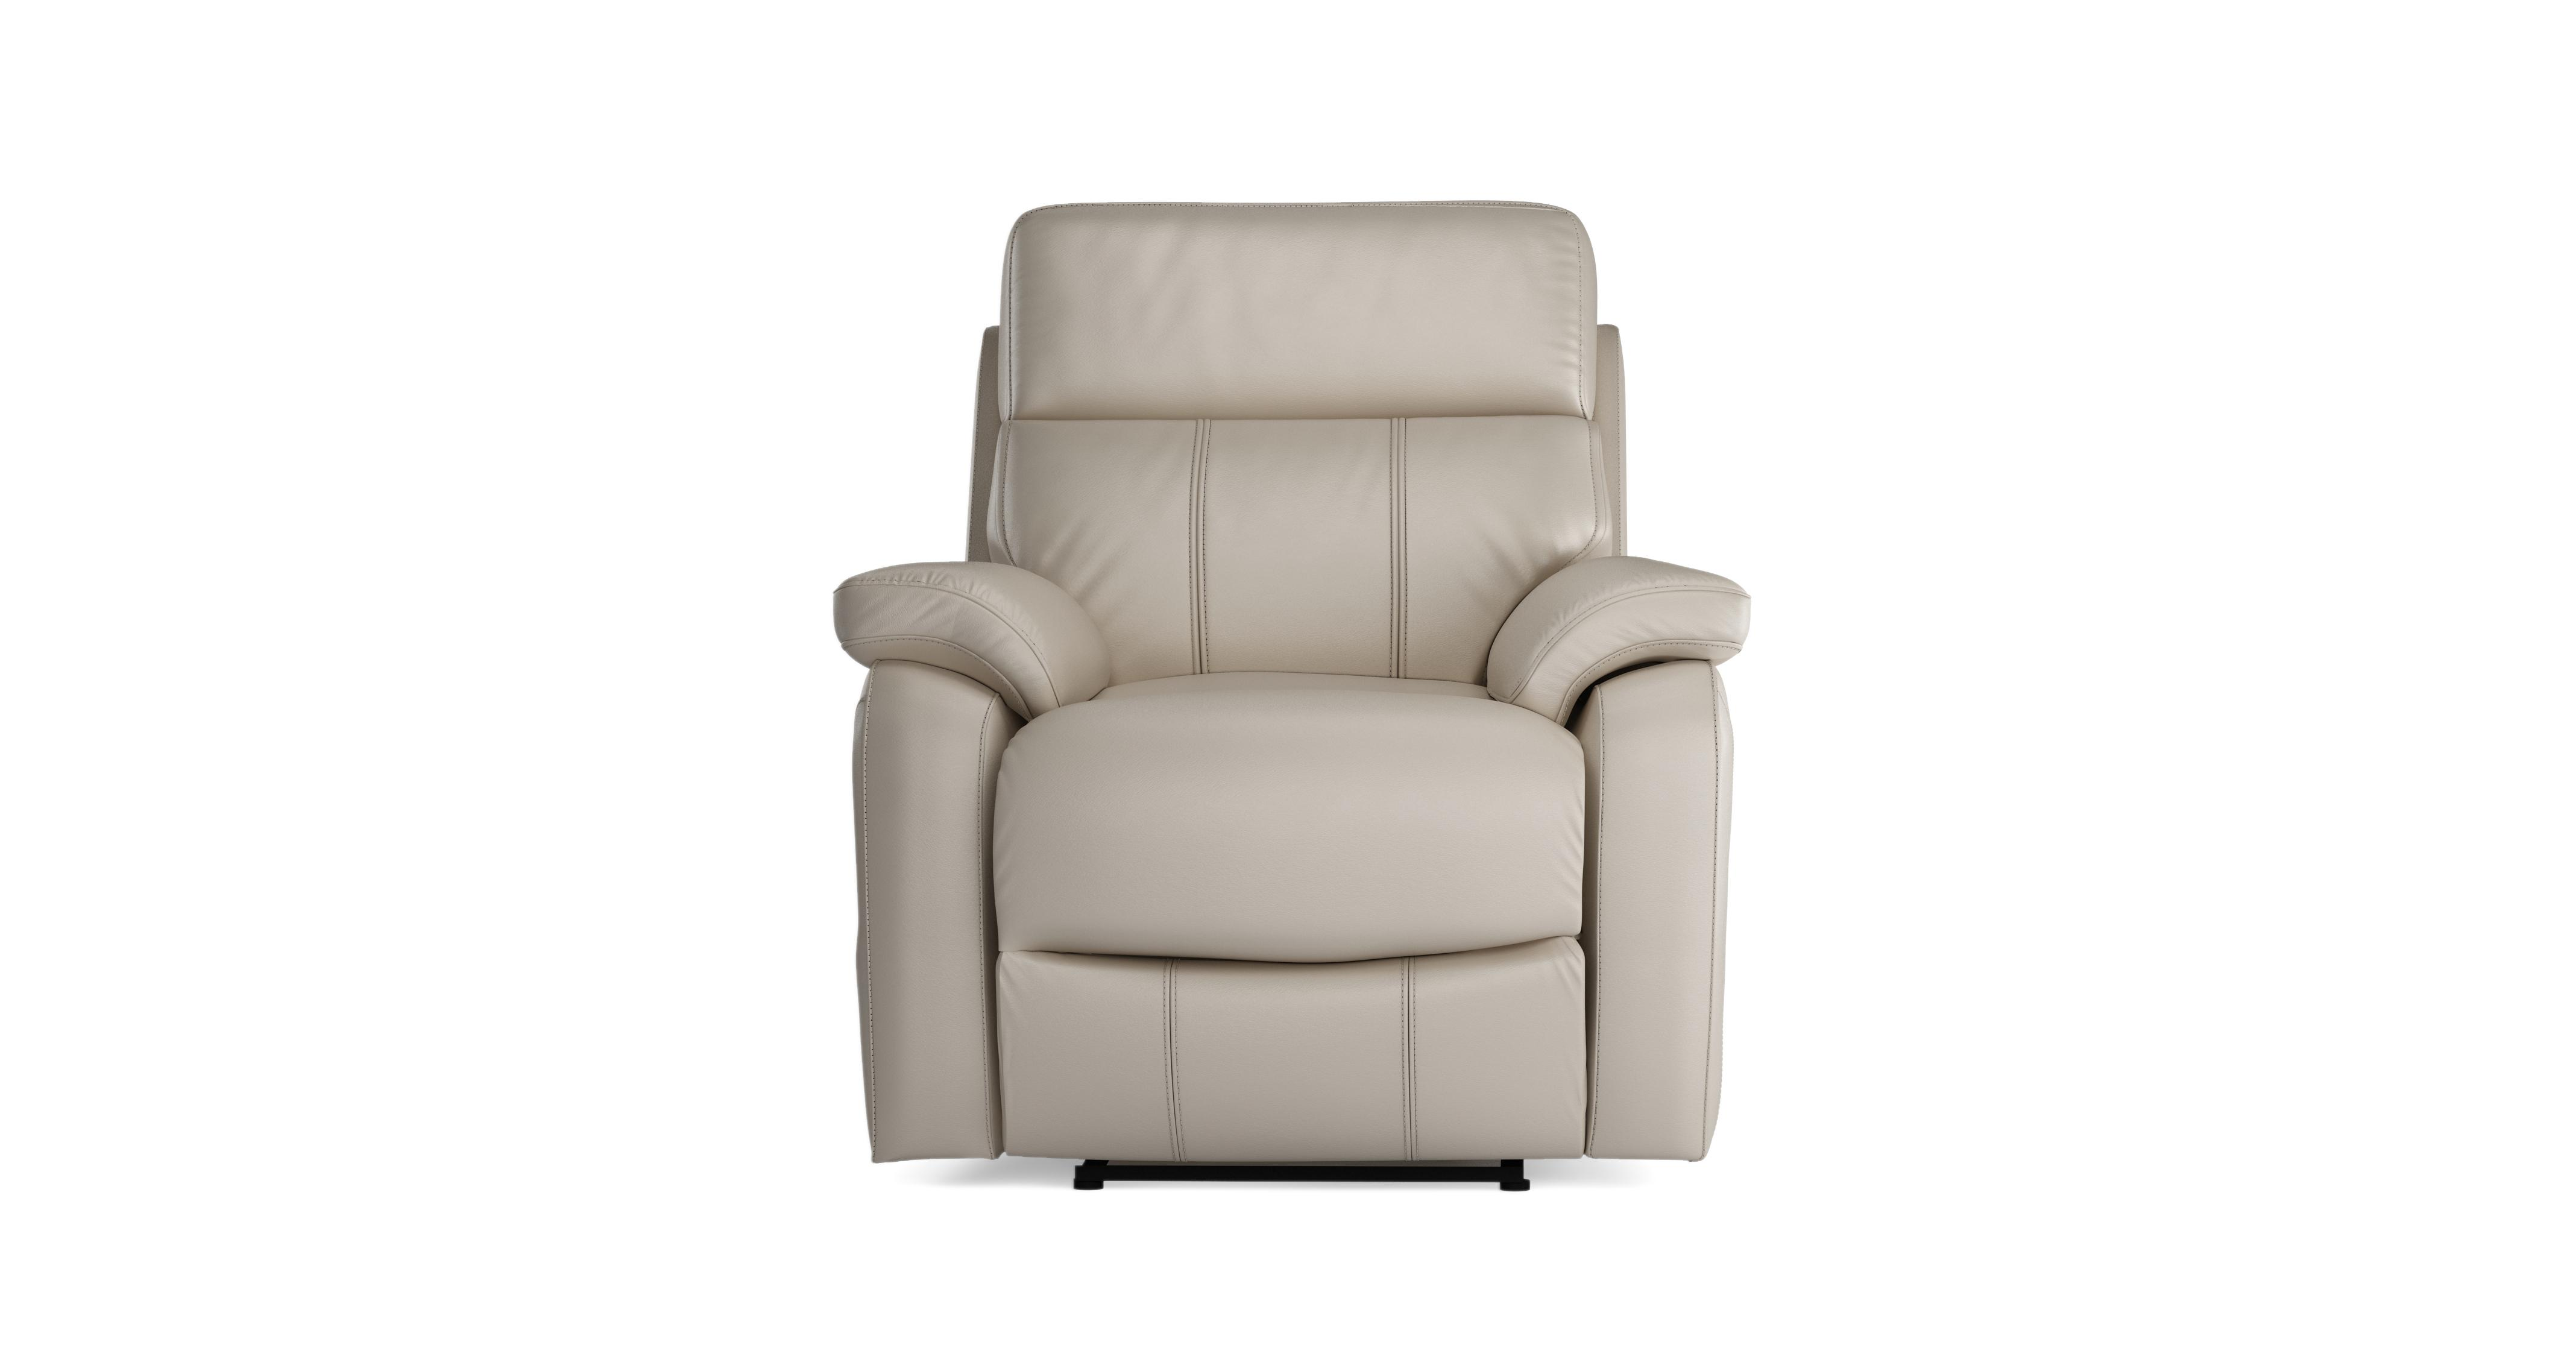 New Navona: Manual Recliner Chair